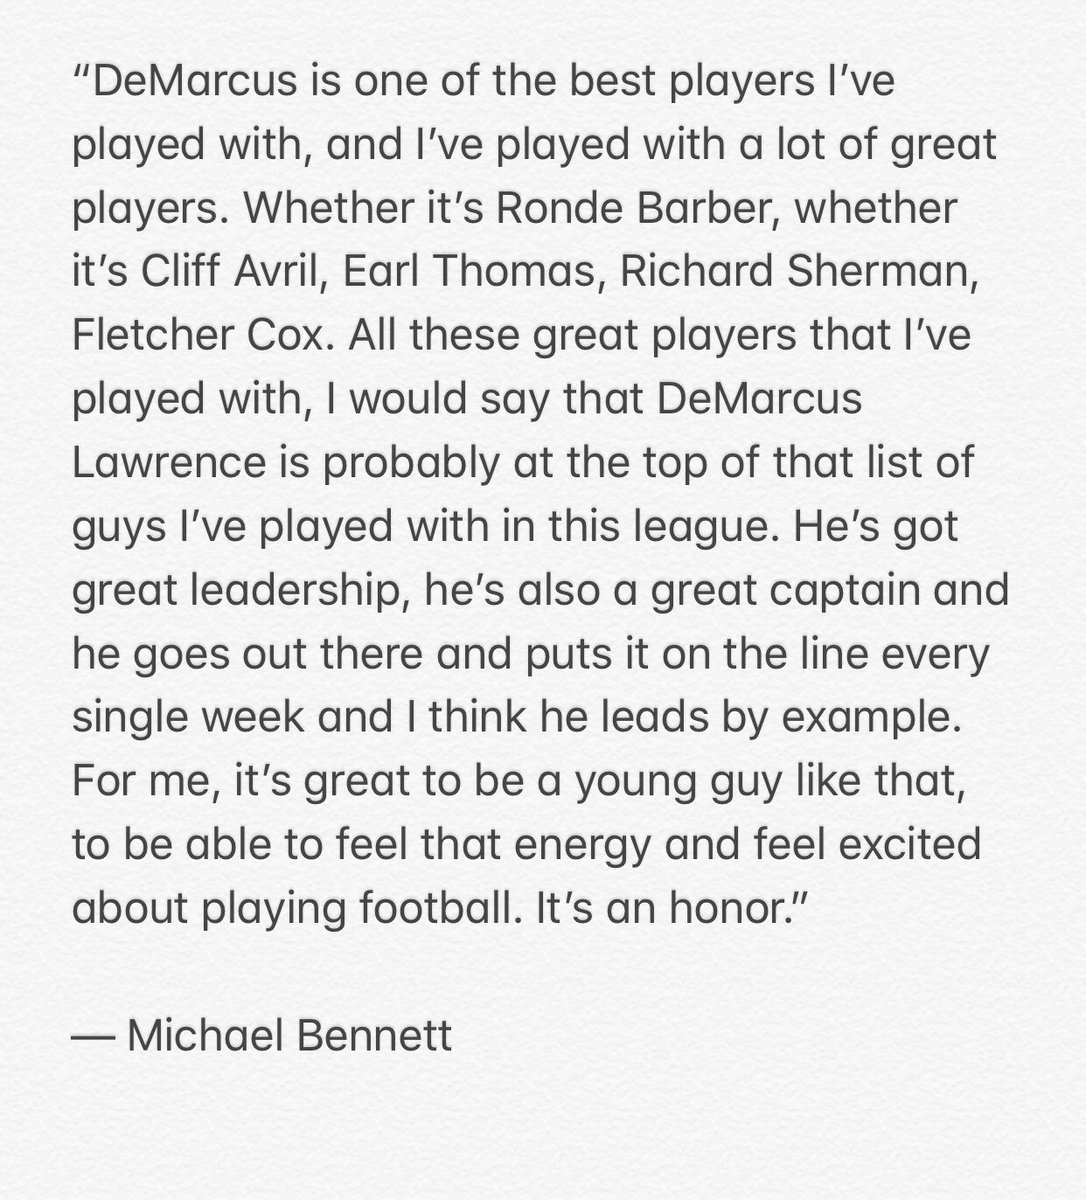 Michael Bennett talked to us tonight. He said a bunch of interesting stuff, but maybe the most interesting was his praise for DeMarcus Lawrence. Given the caliber of players Bennett has spent time around, that's pretty impressive.